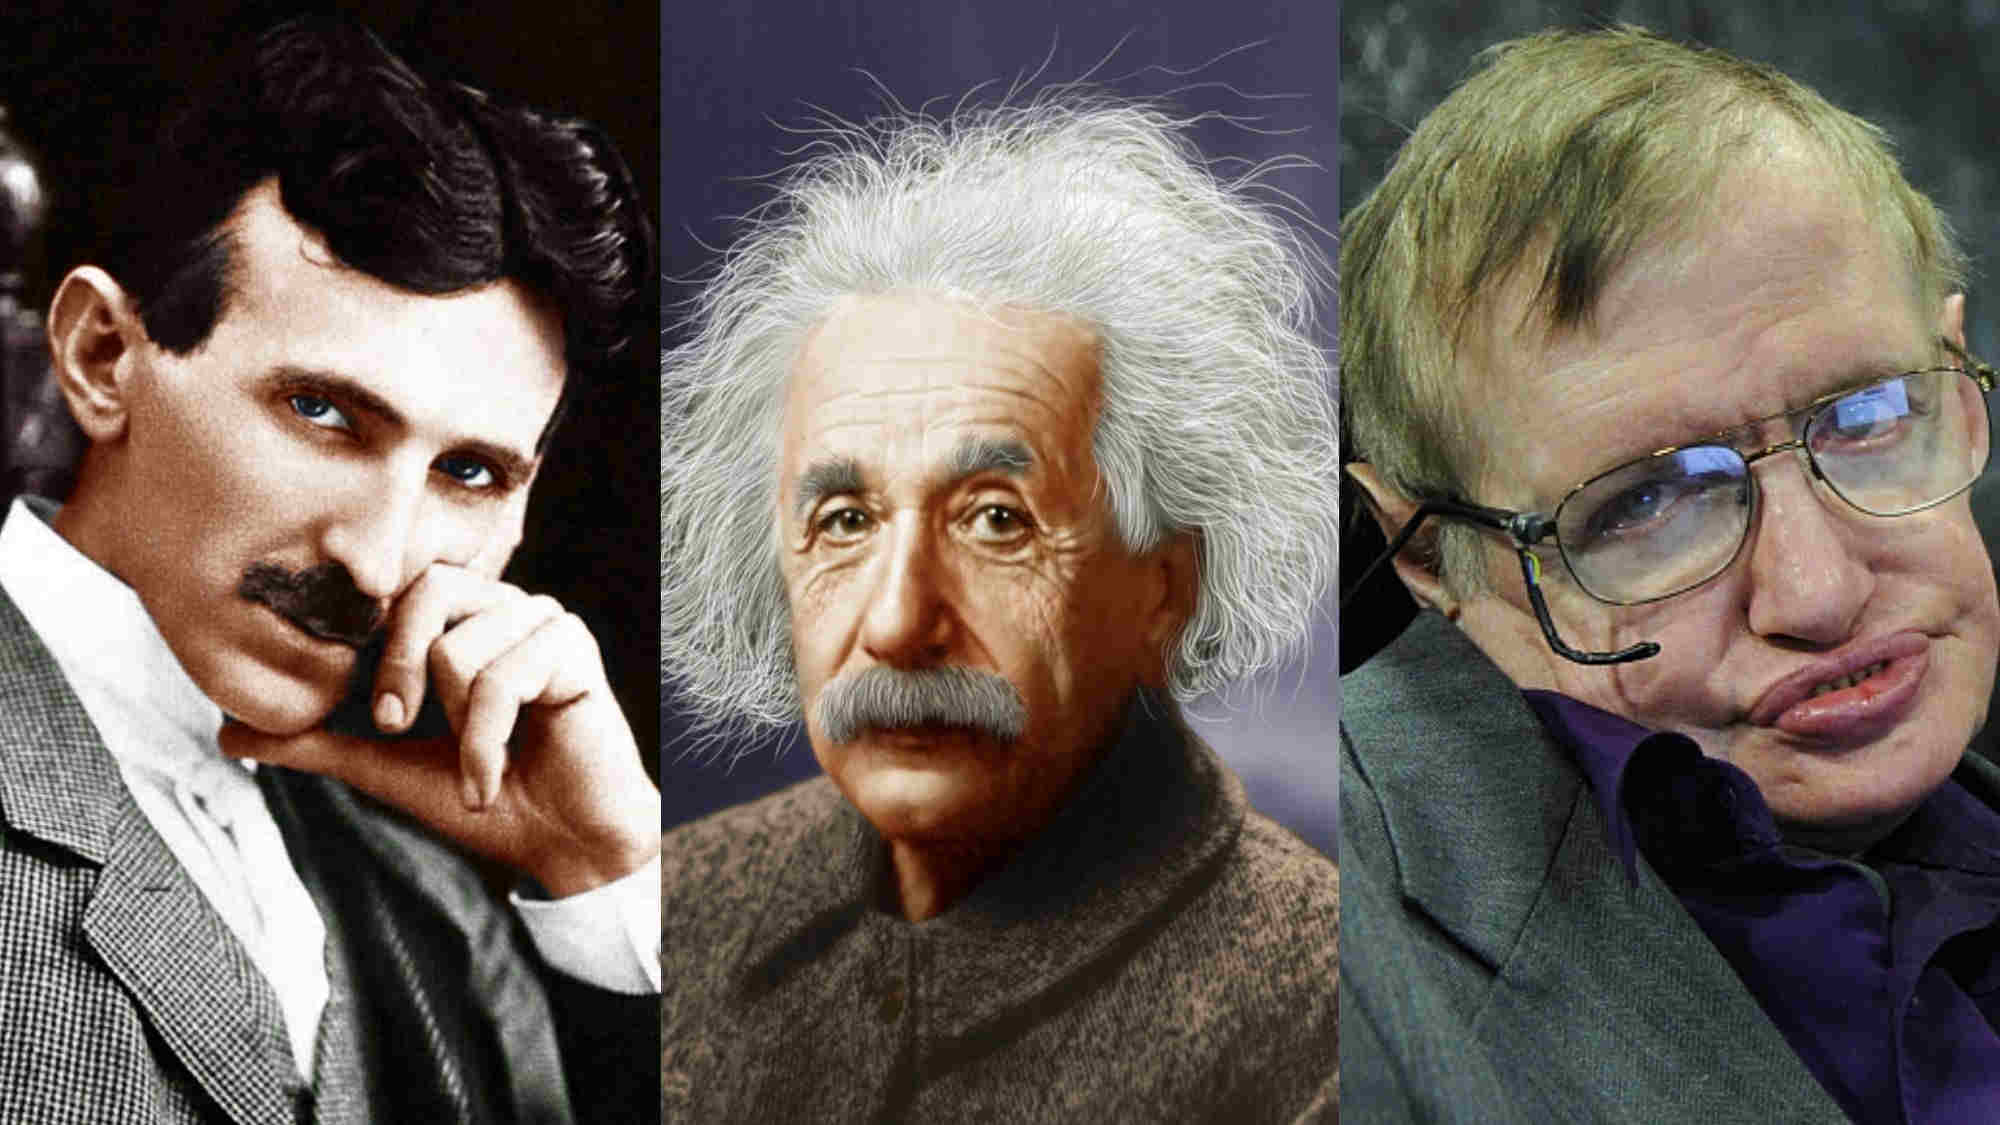 why do people become scientists?